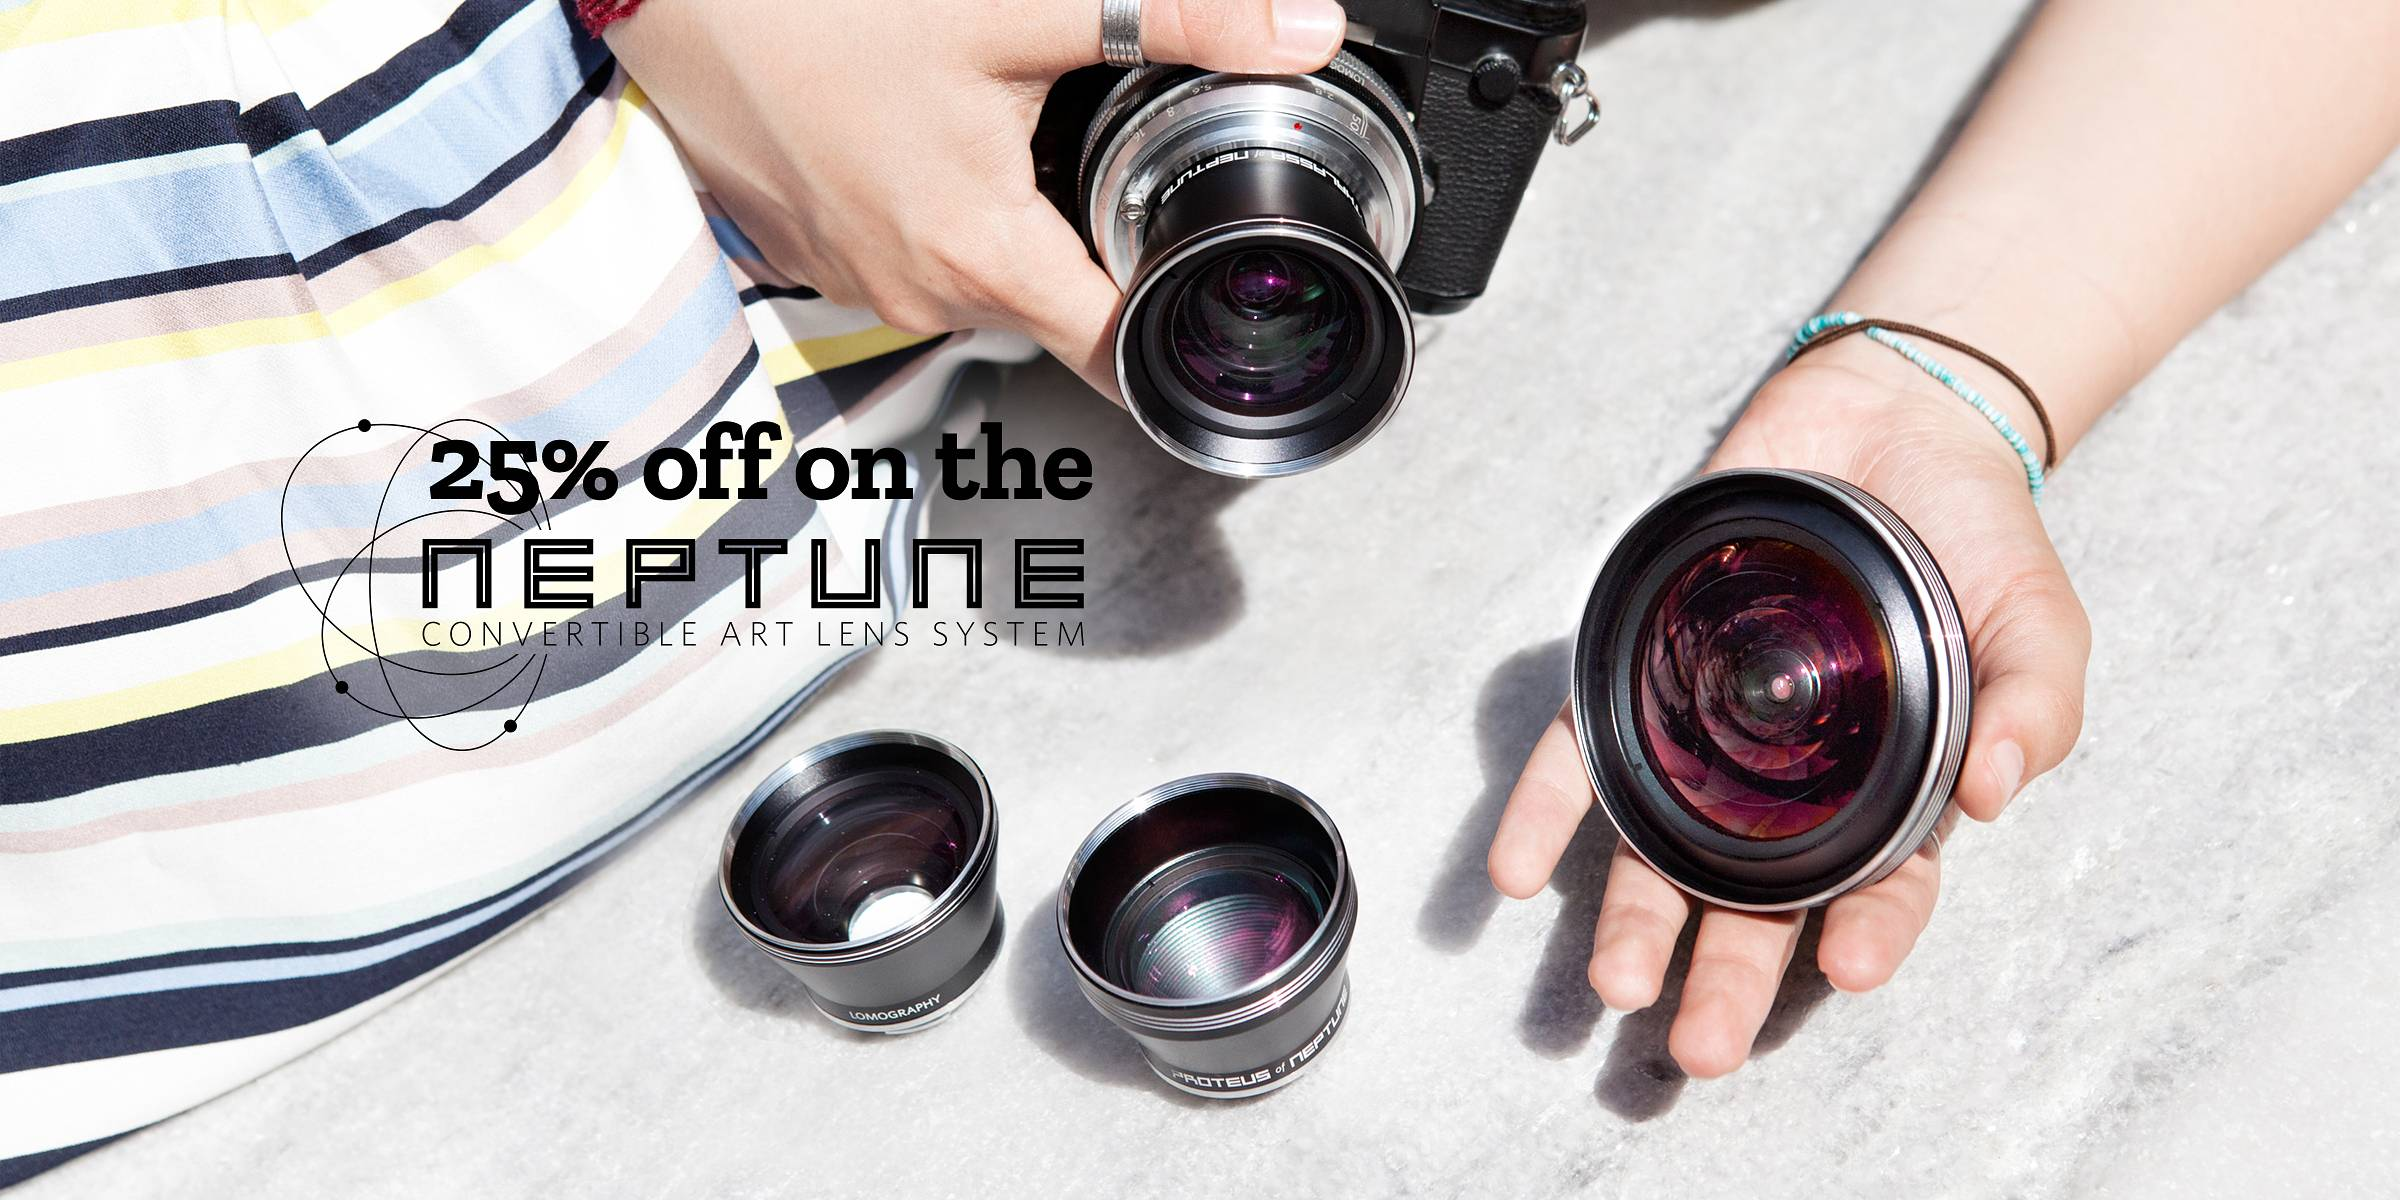 Save a Massive 25% on Our Neptune Convertible Lens System! e86f5b35f889